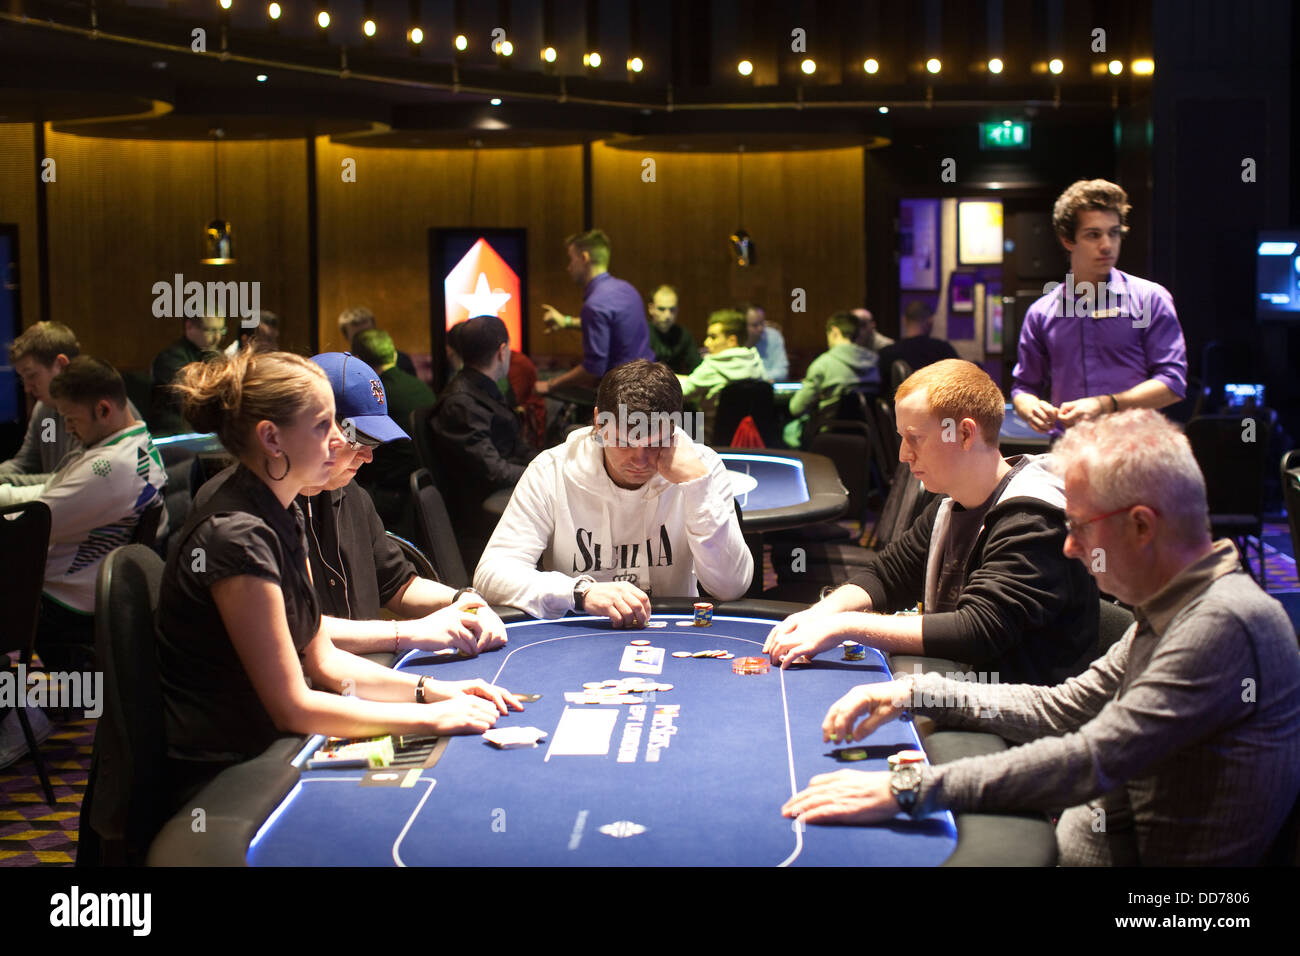 PokerStars poker room at the Hippodrome Casino bringing 24-hour poker to London, Leicester Square, London, UK - Stock Image